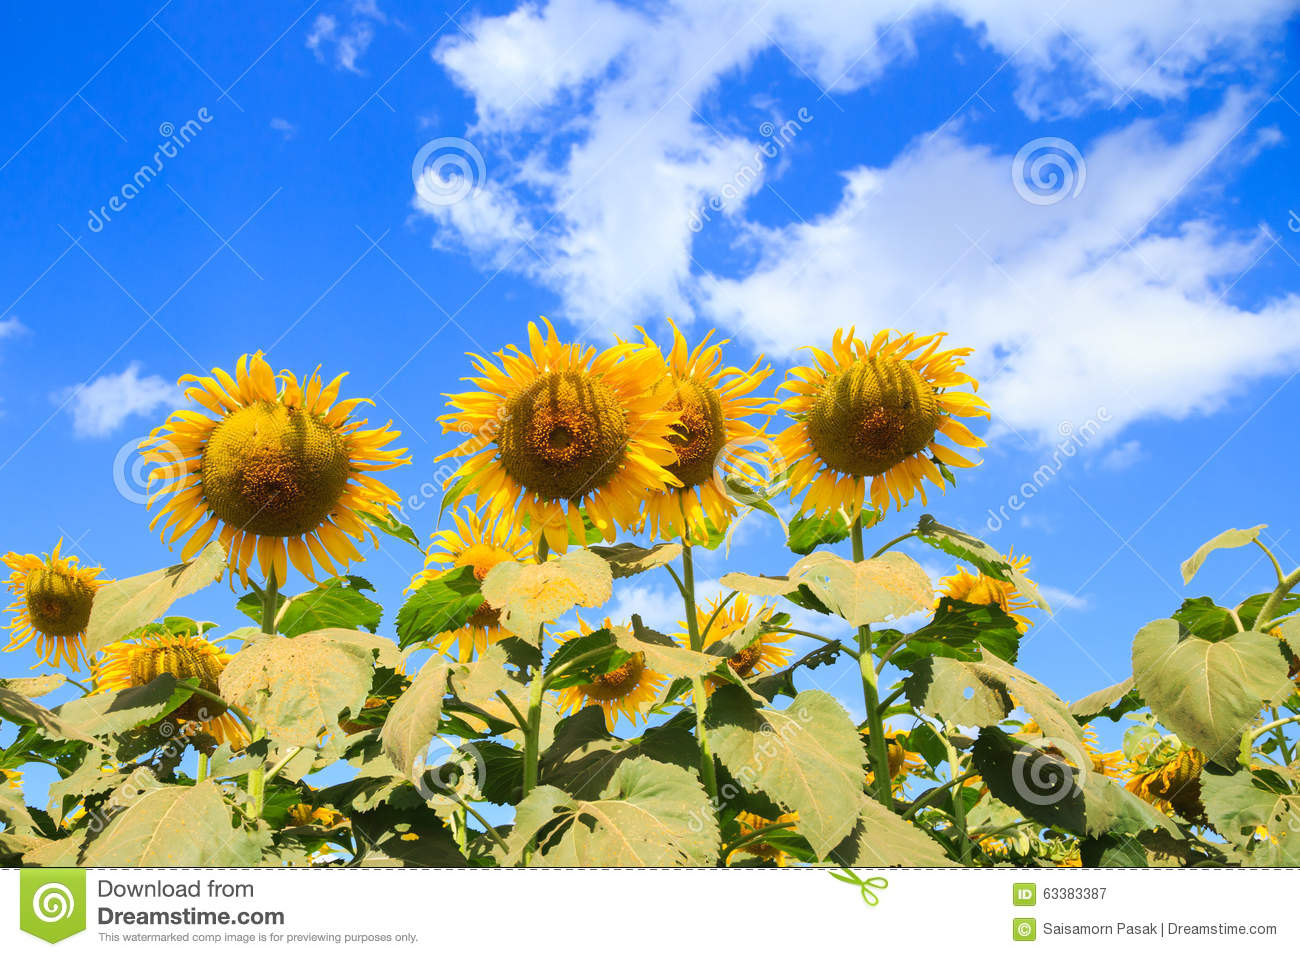 sunflower field picture blooming - photo #42